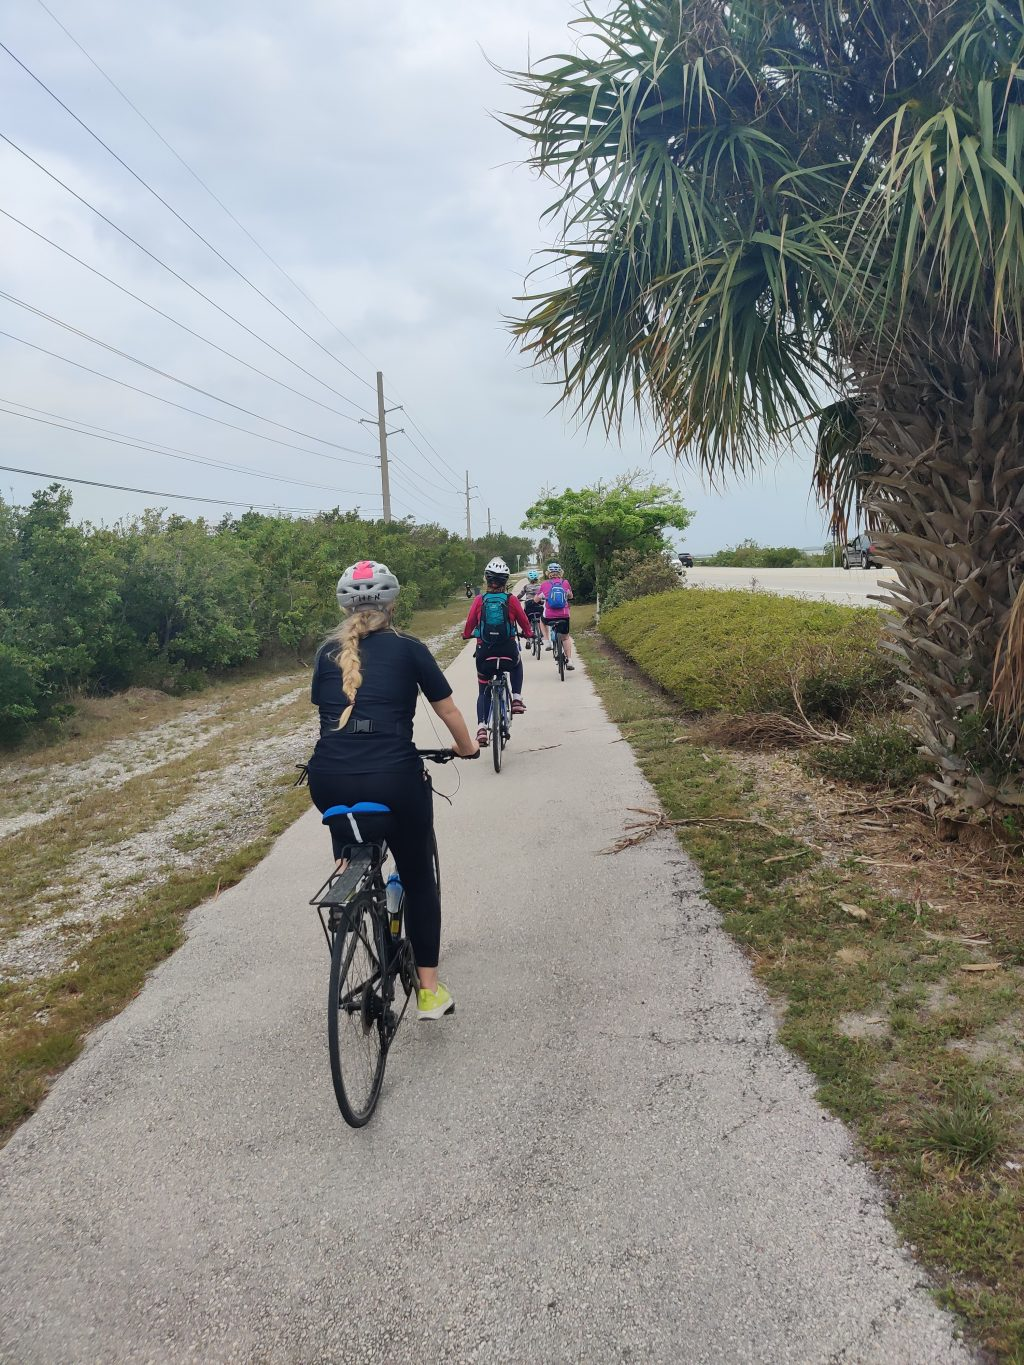 A Bicycle Journey through the Florida Keys with Active World Journeys.